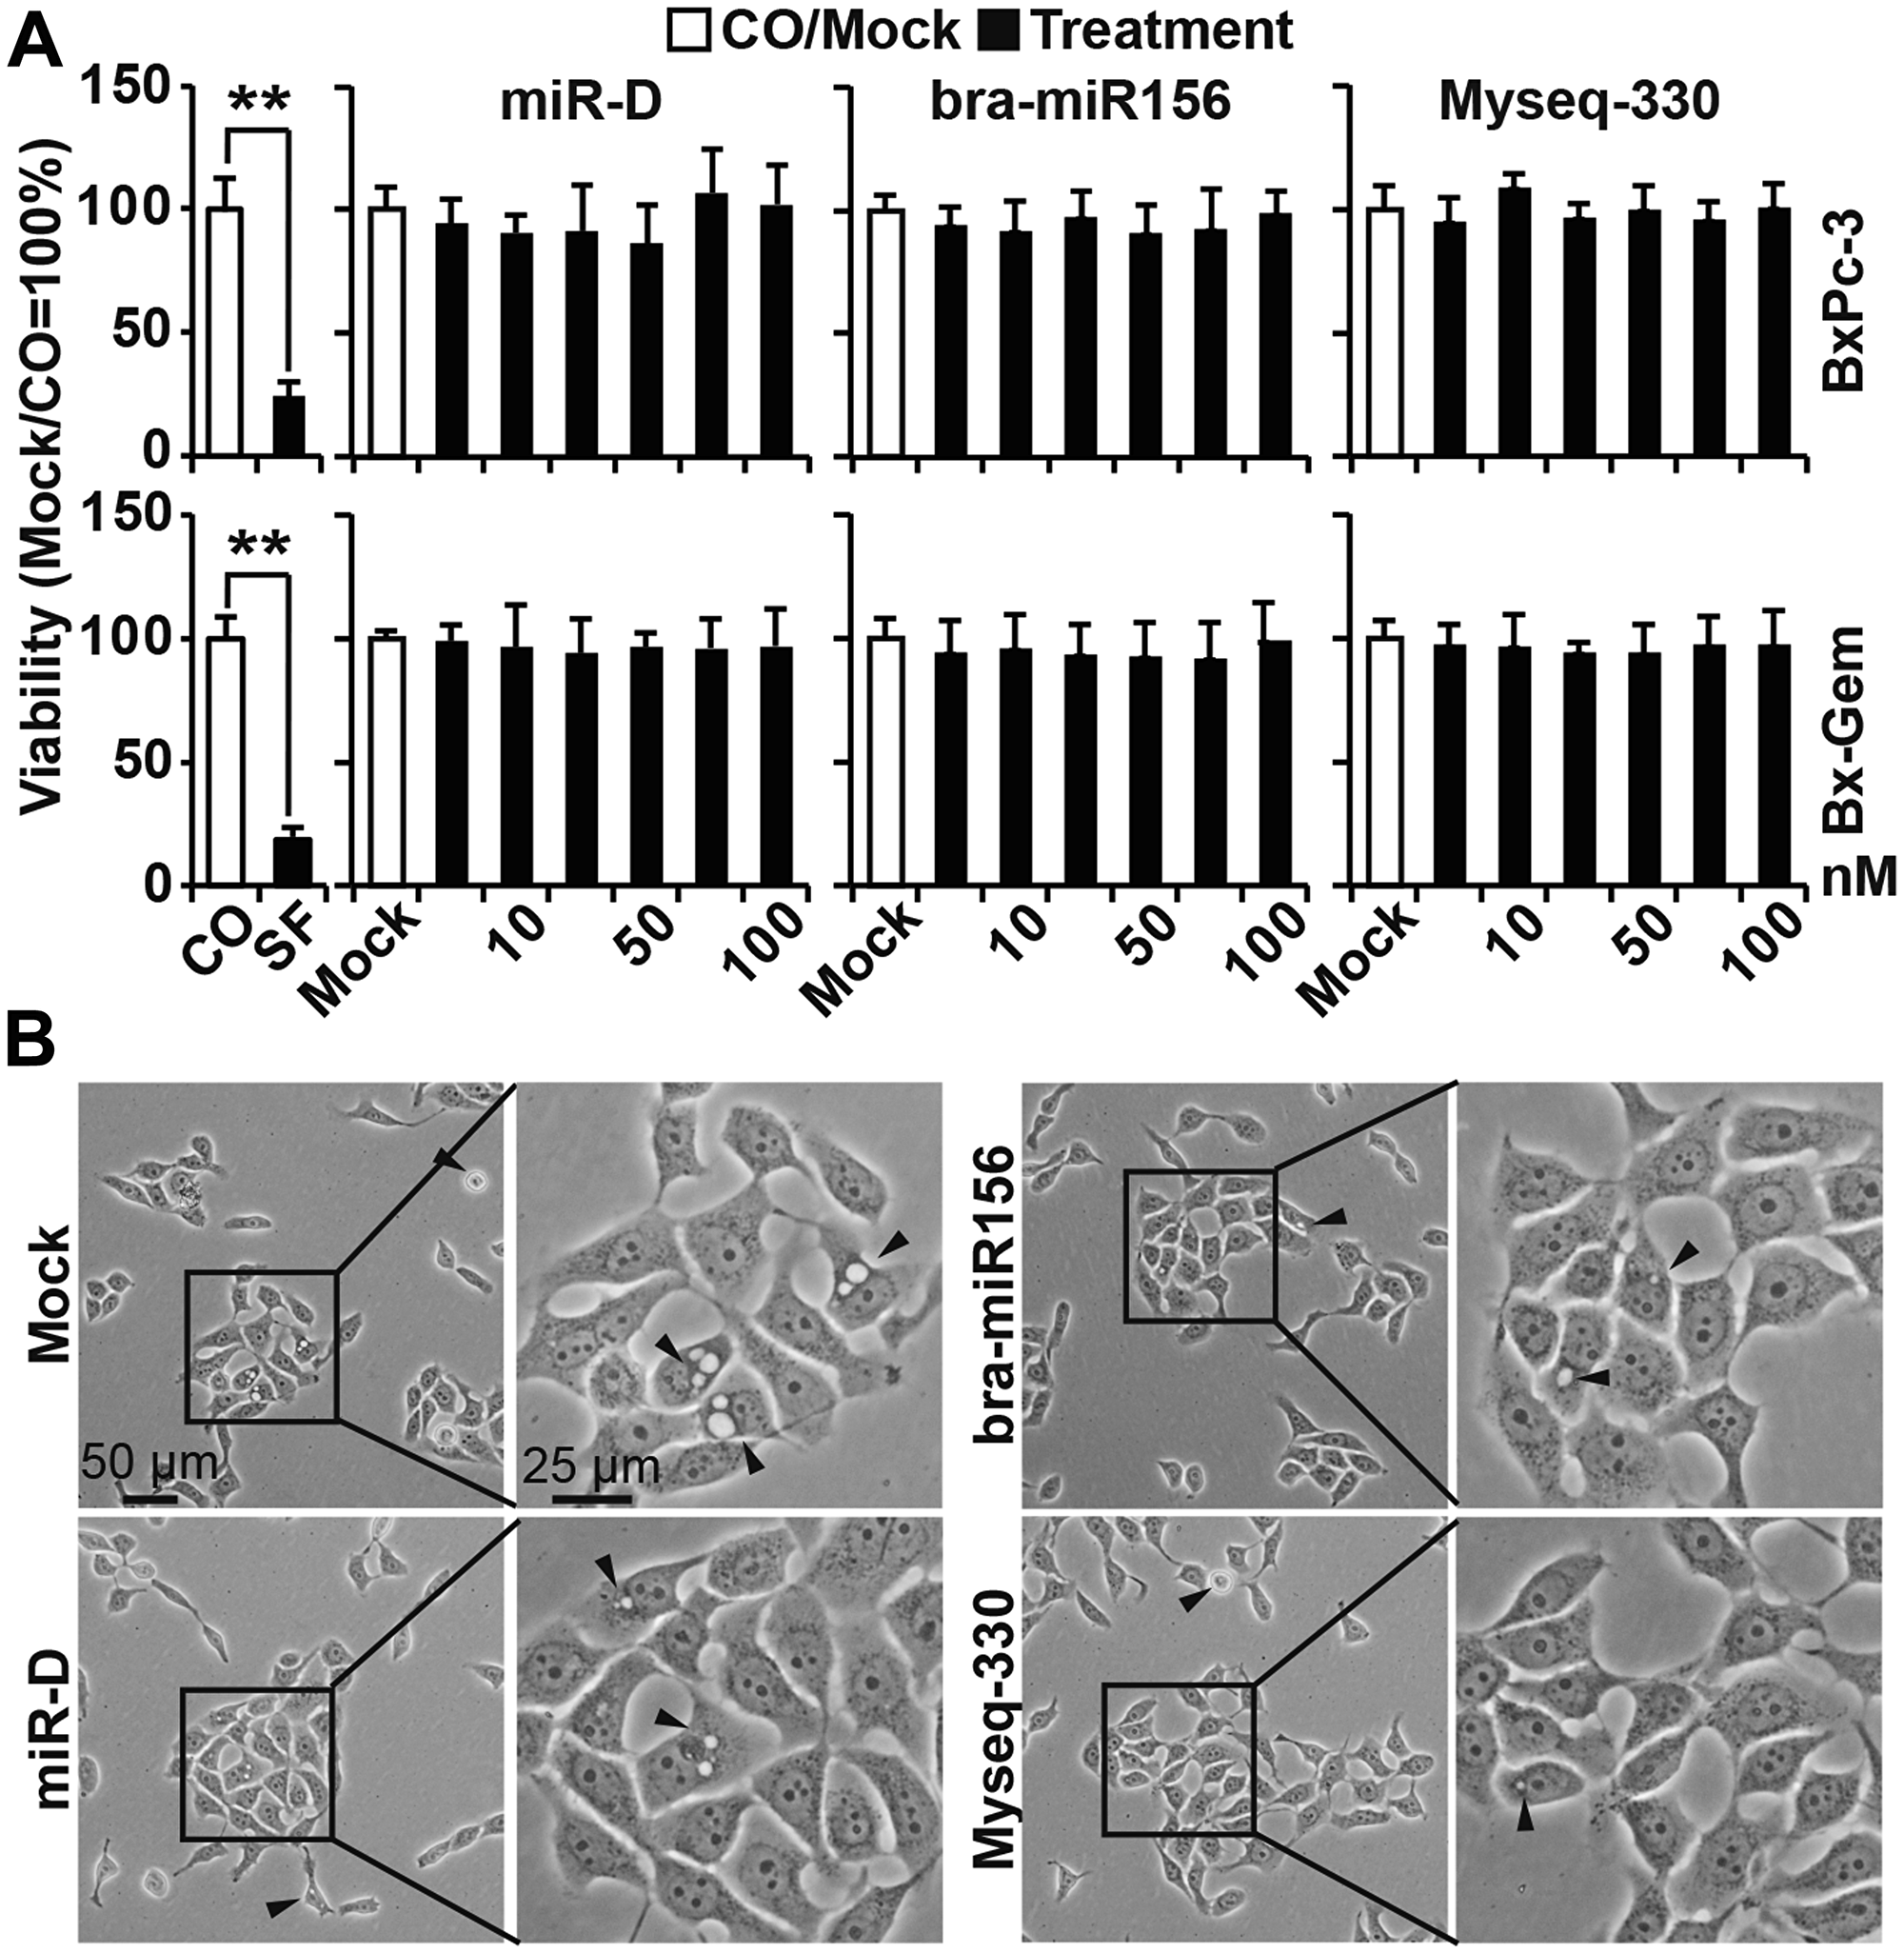 Lipofection of the top broccoletti-miR candidates does not alter cell viability or morphology.